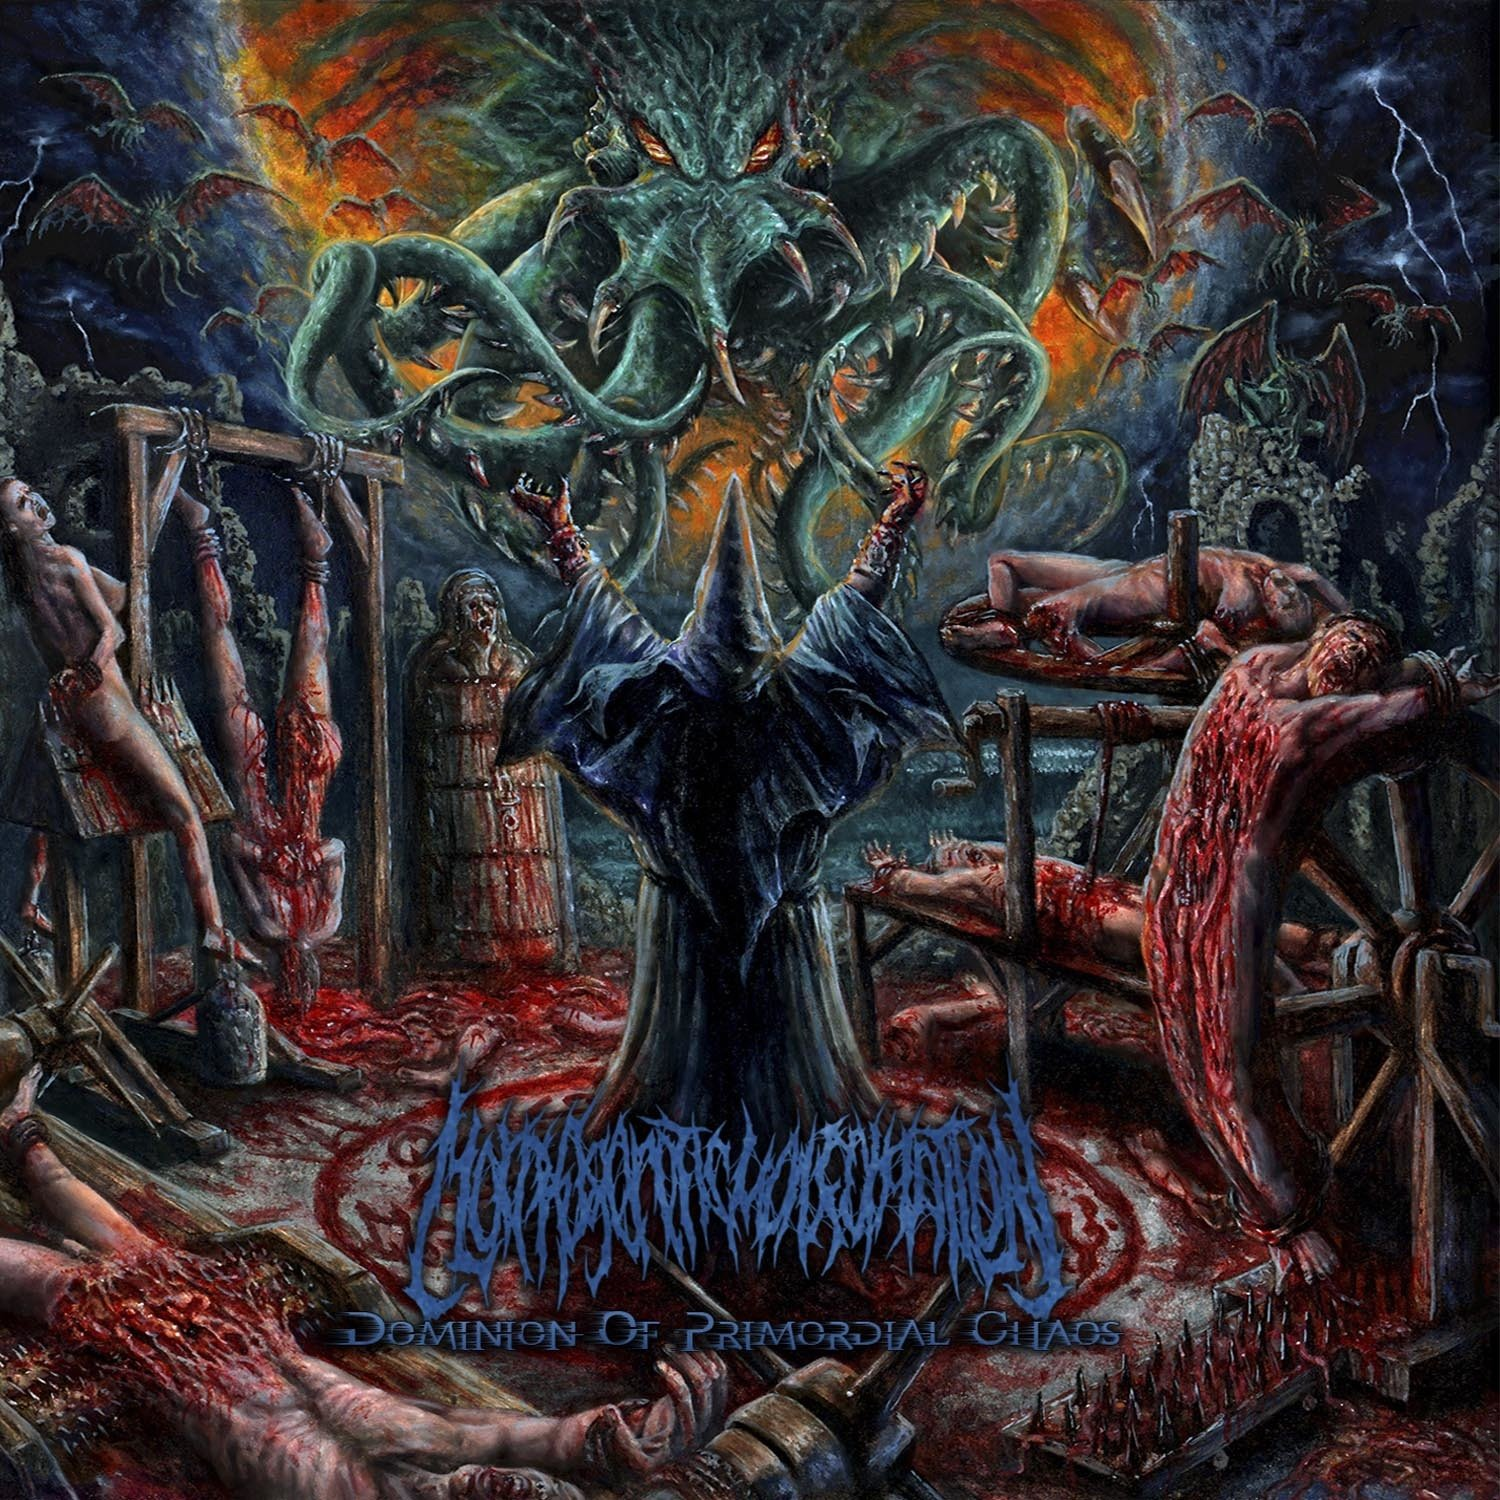 Morphogenetic Malformation – Dominion of Primordial Chaos (2020) [FLAC]